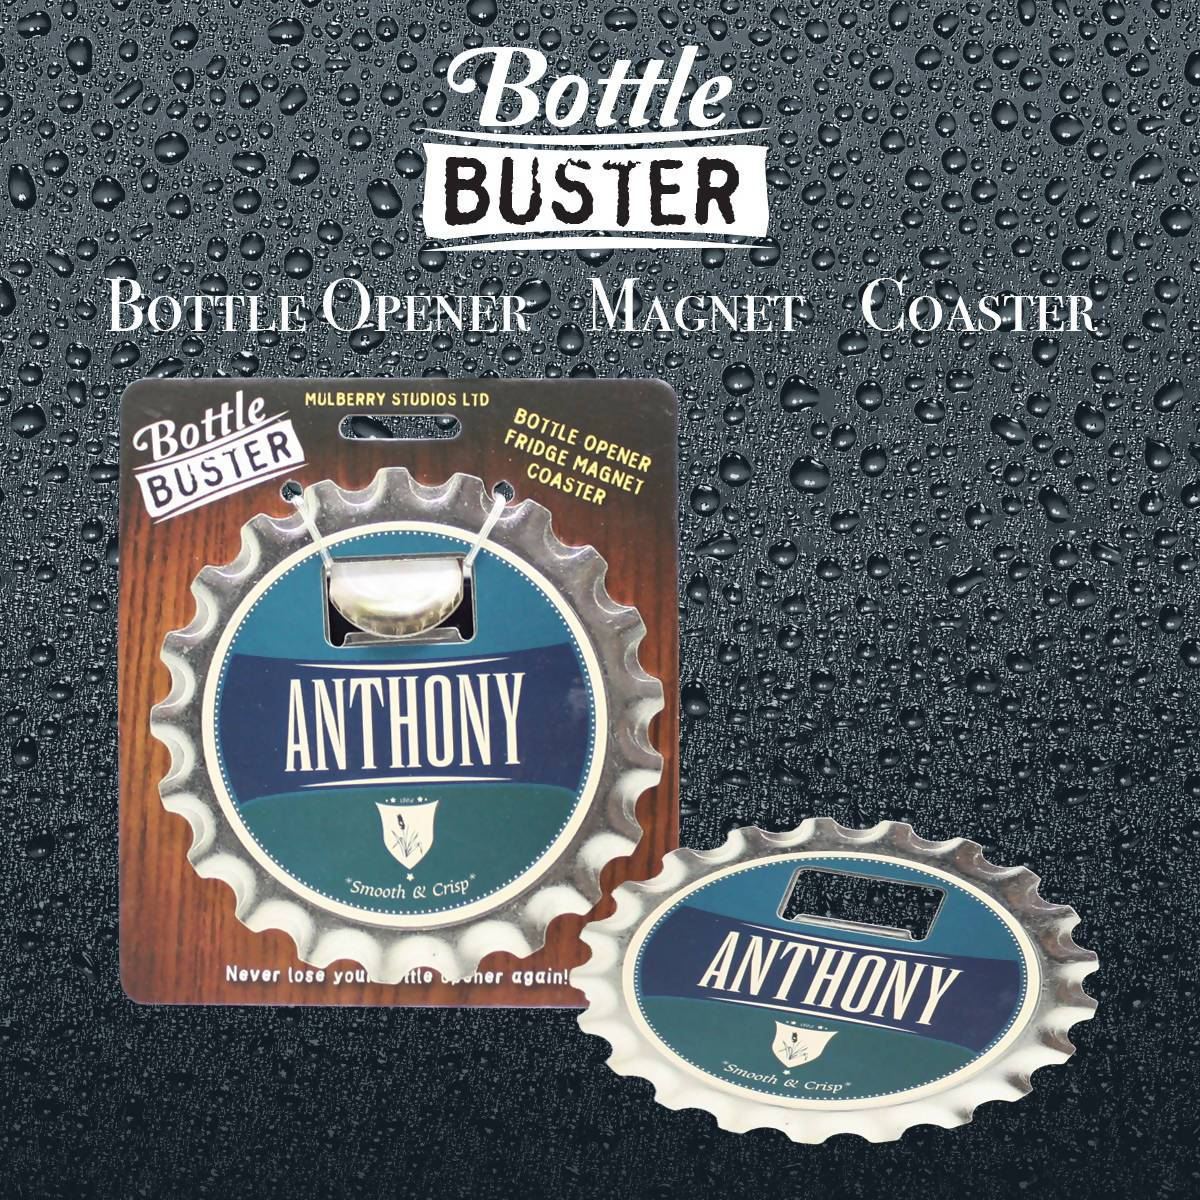 BOTTLE BUSTER - Best Bottle Opener : Anthony - Bottle Openers - La Belle Collection - Naiise